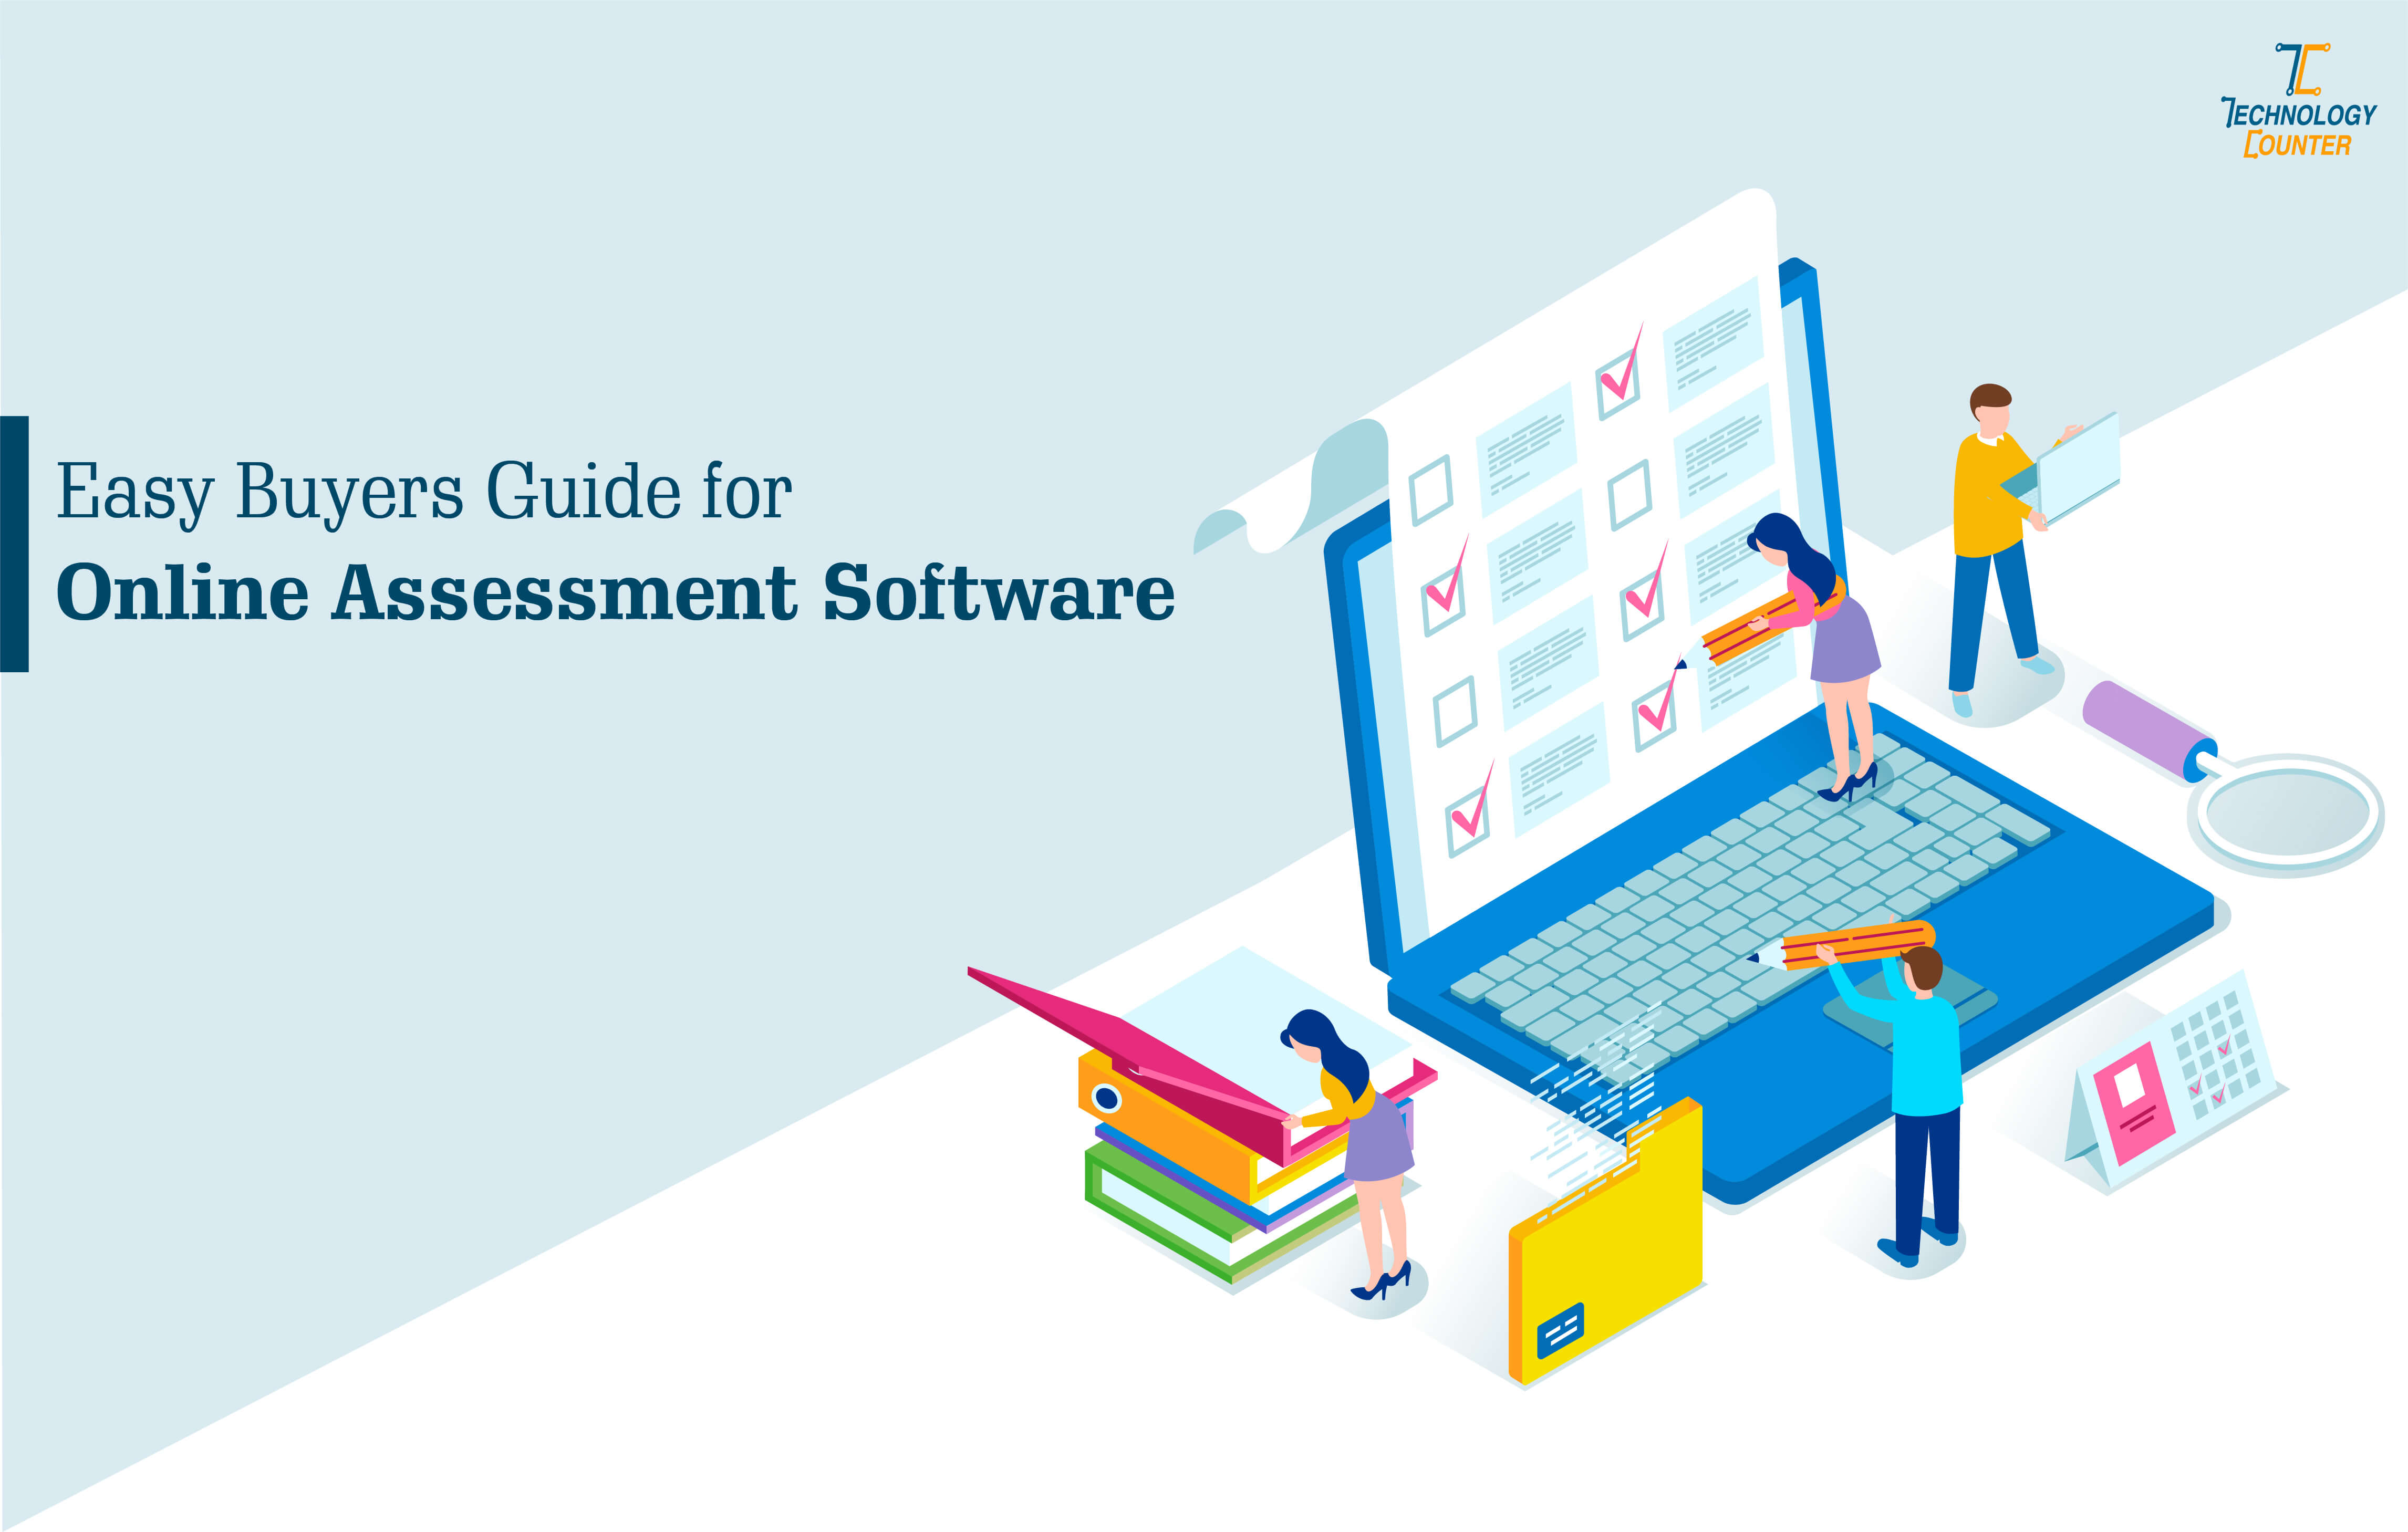 Easy Buyers Guide for Online Assessment Software